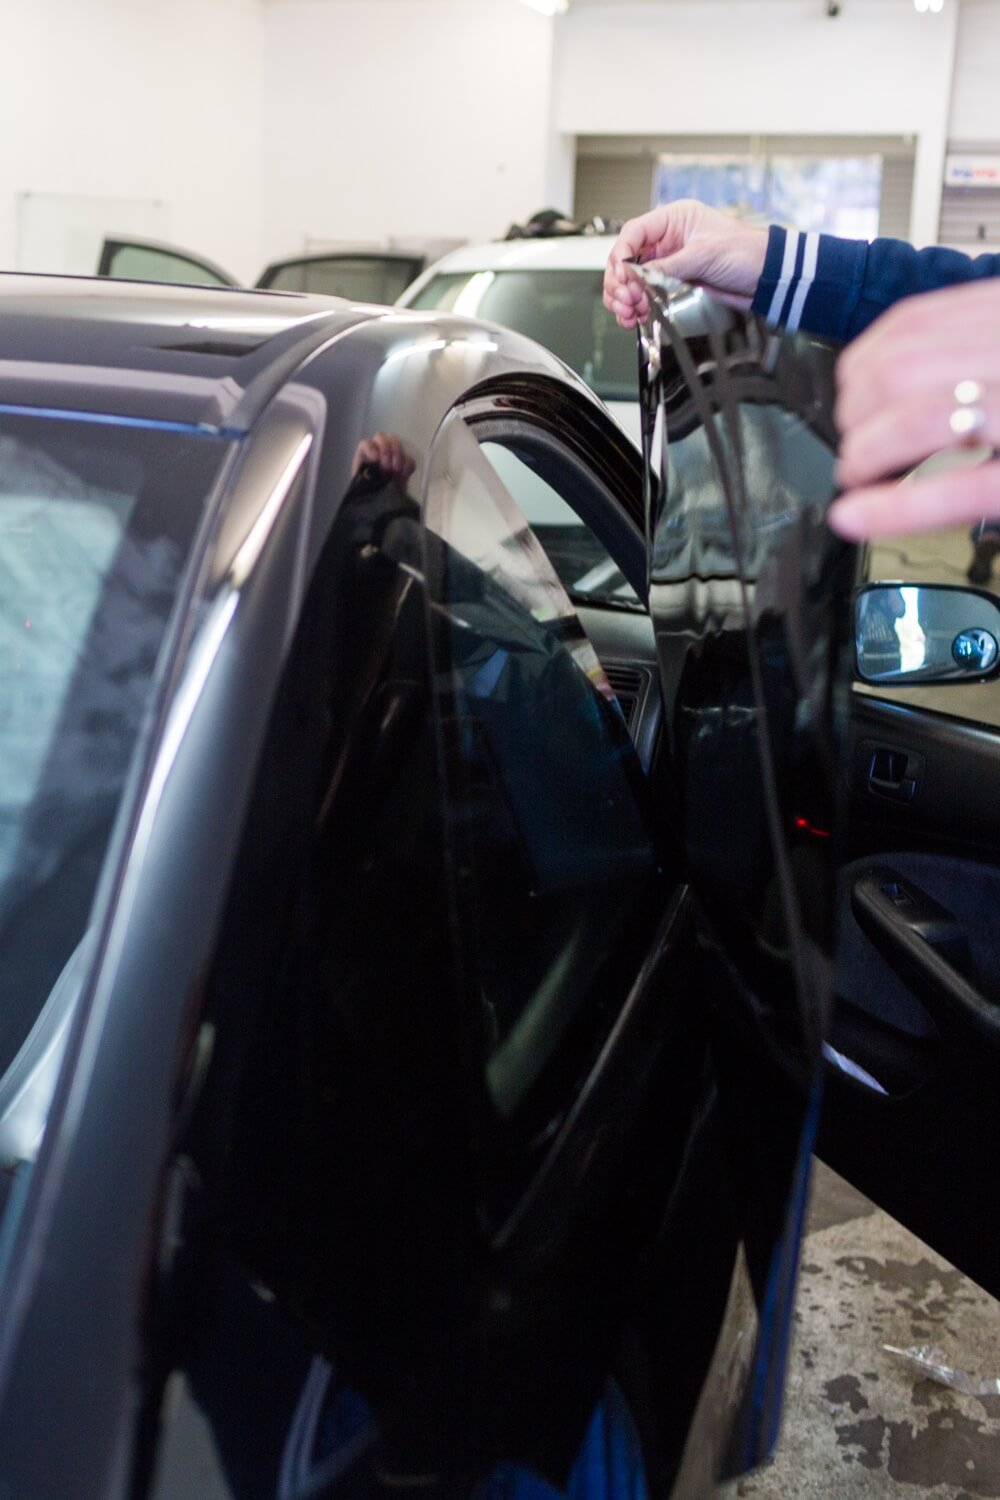 Car tinted windows can save you money on gas in San Diego.